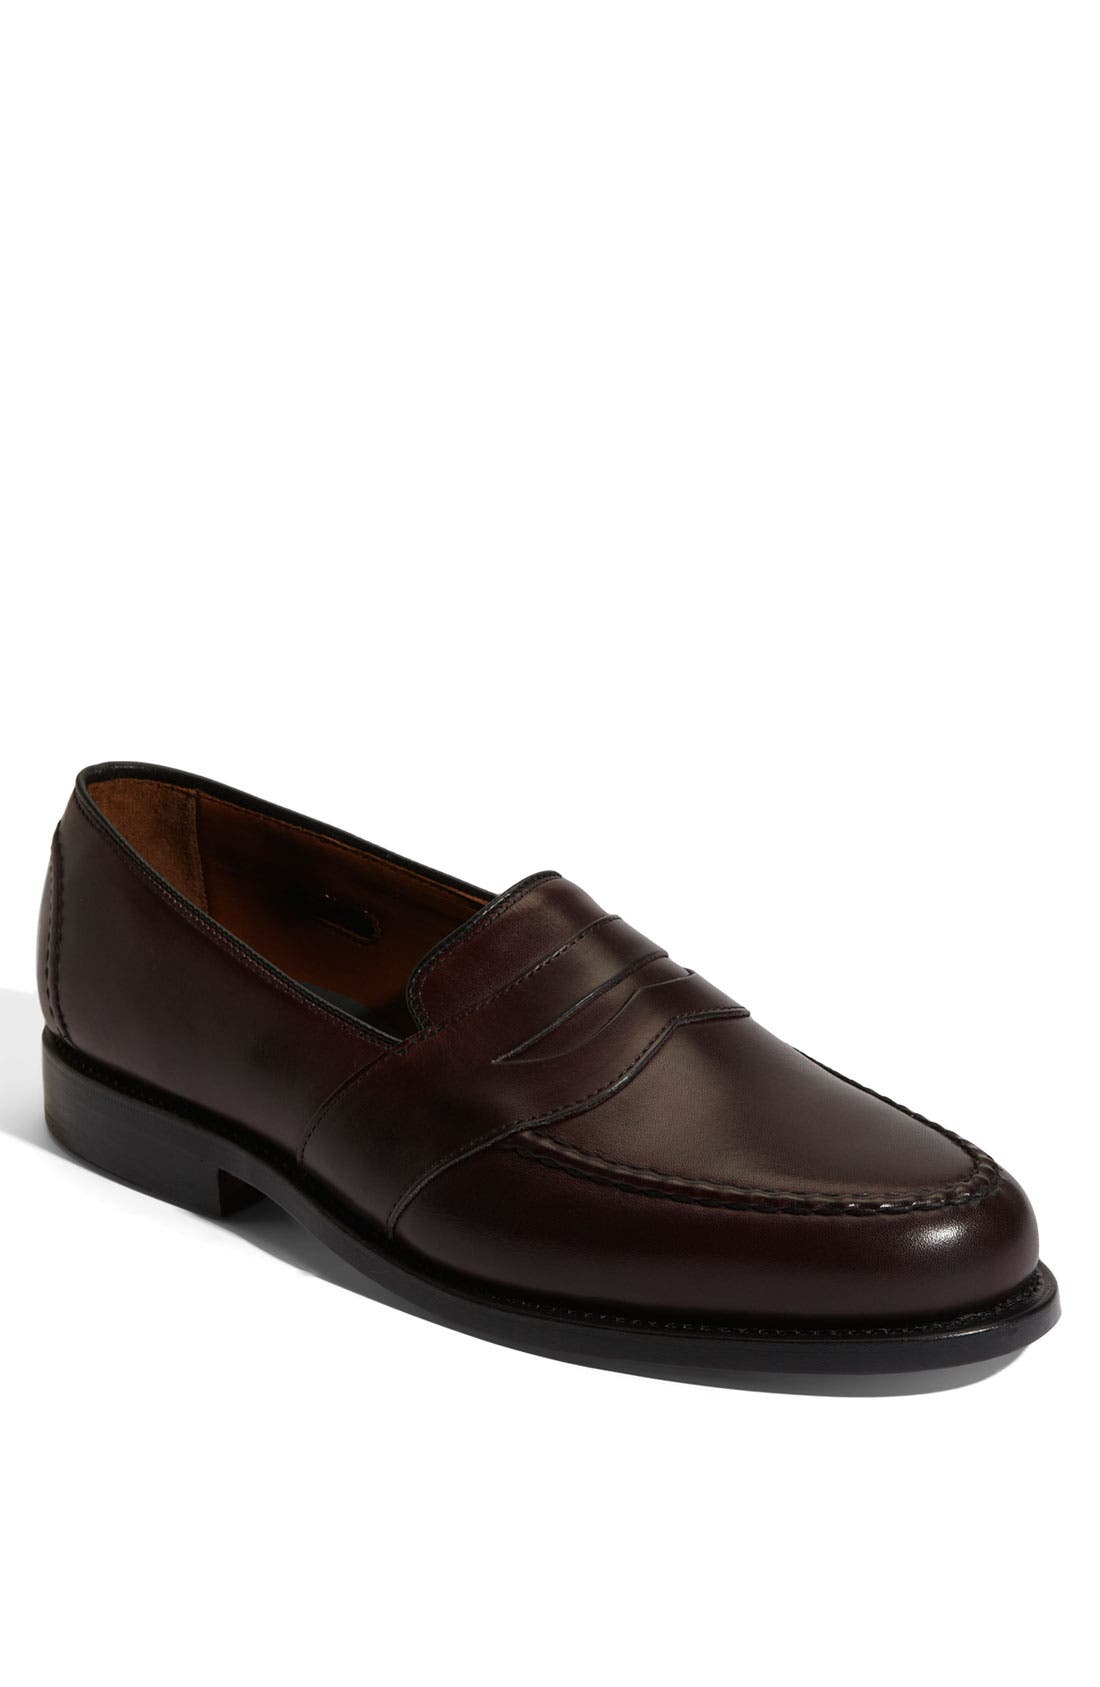 Main Image - Allen Edmonds 'Randolph' Loafer (Men)